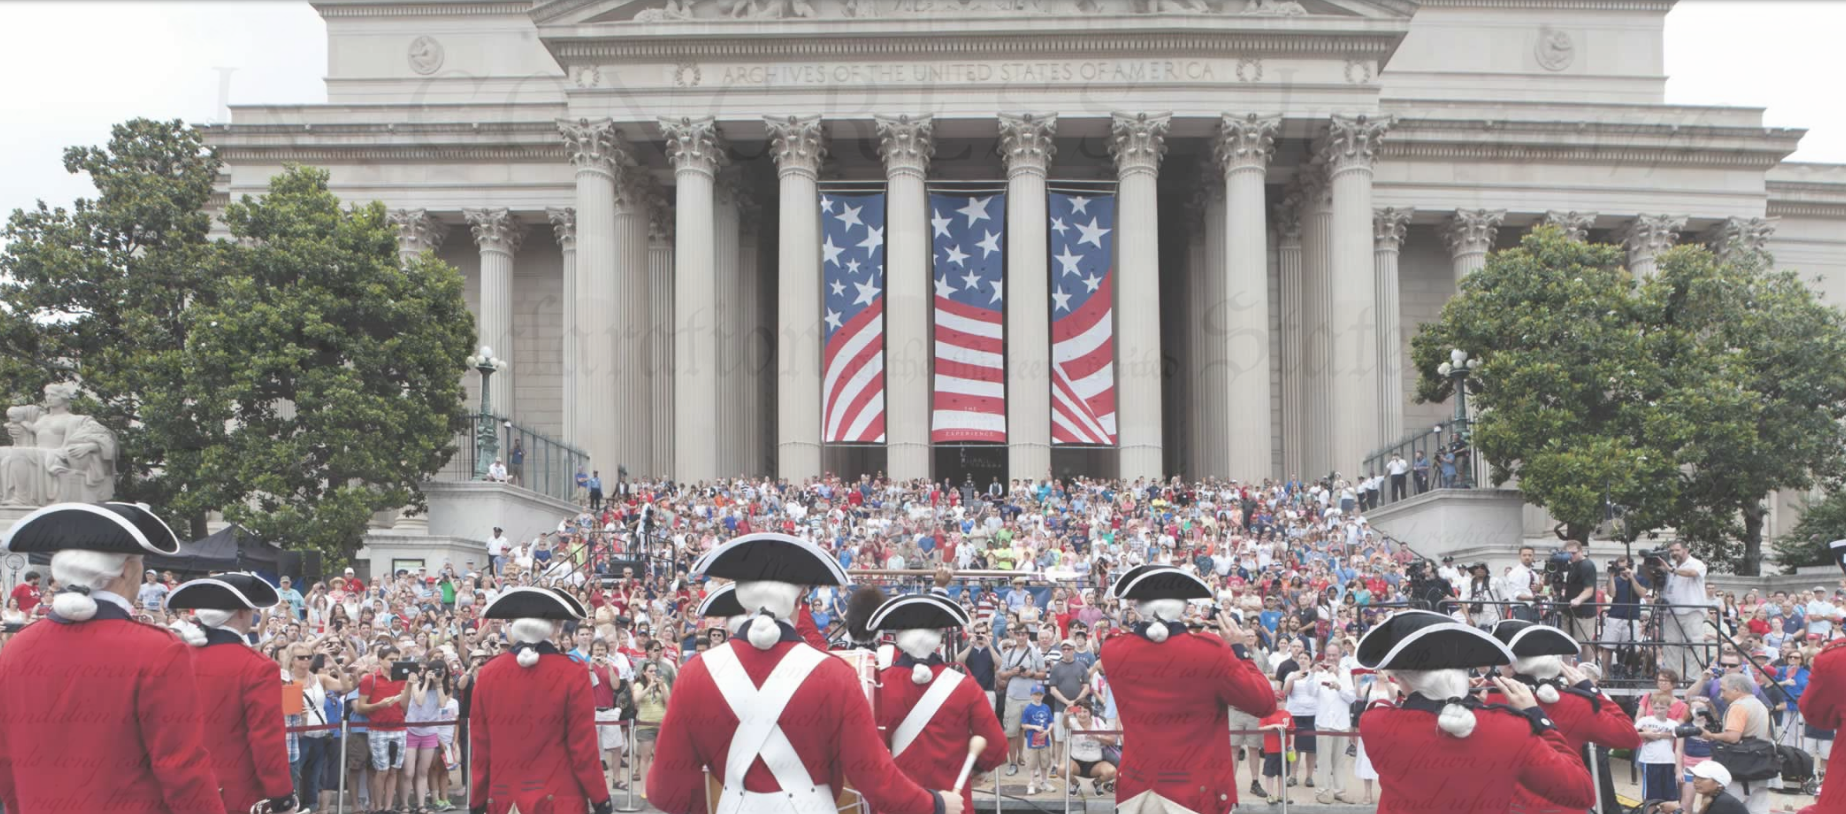 Celebrate July 4 with the National Archives!